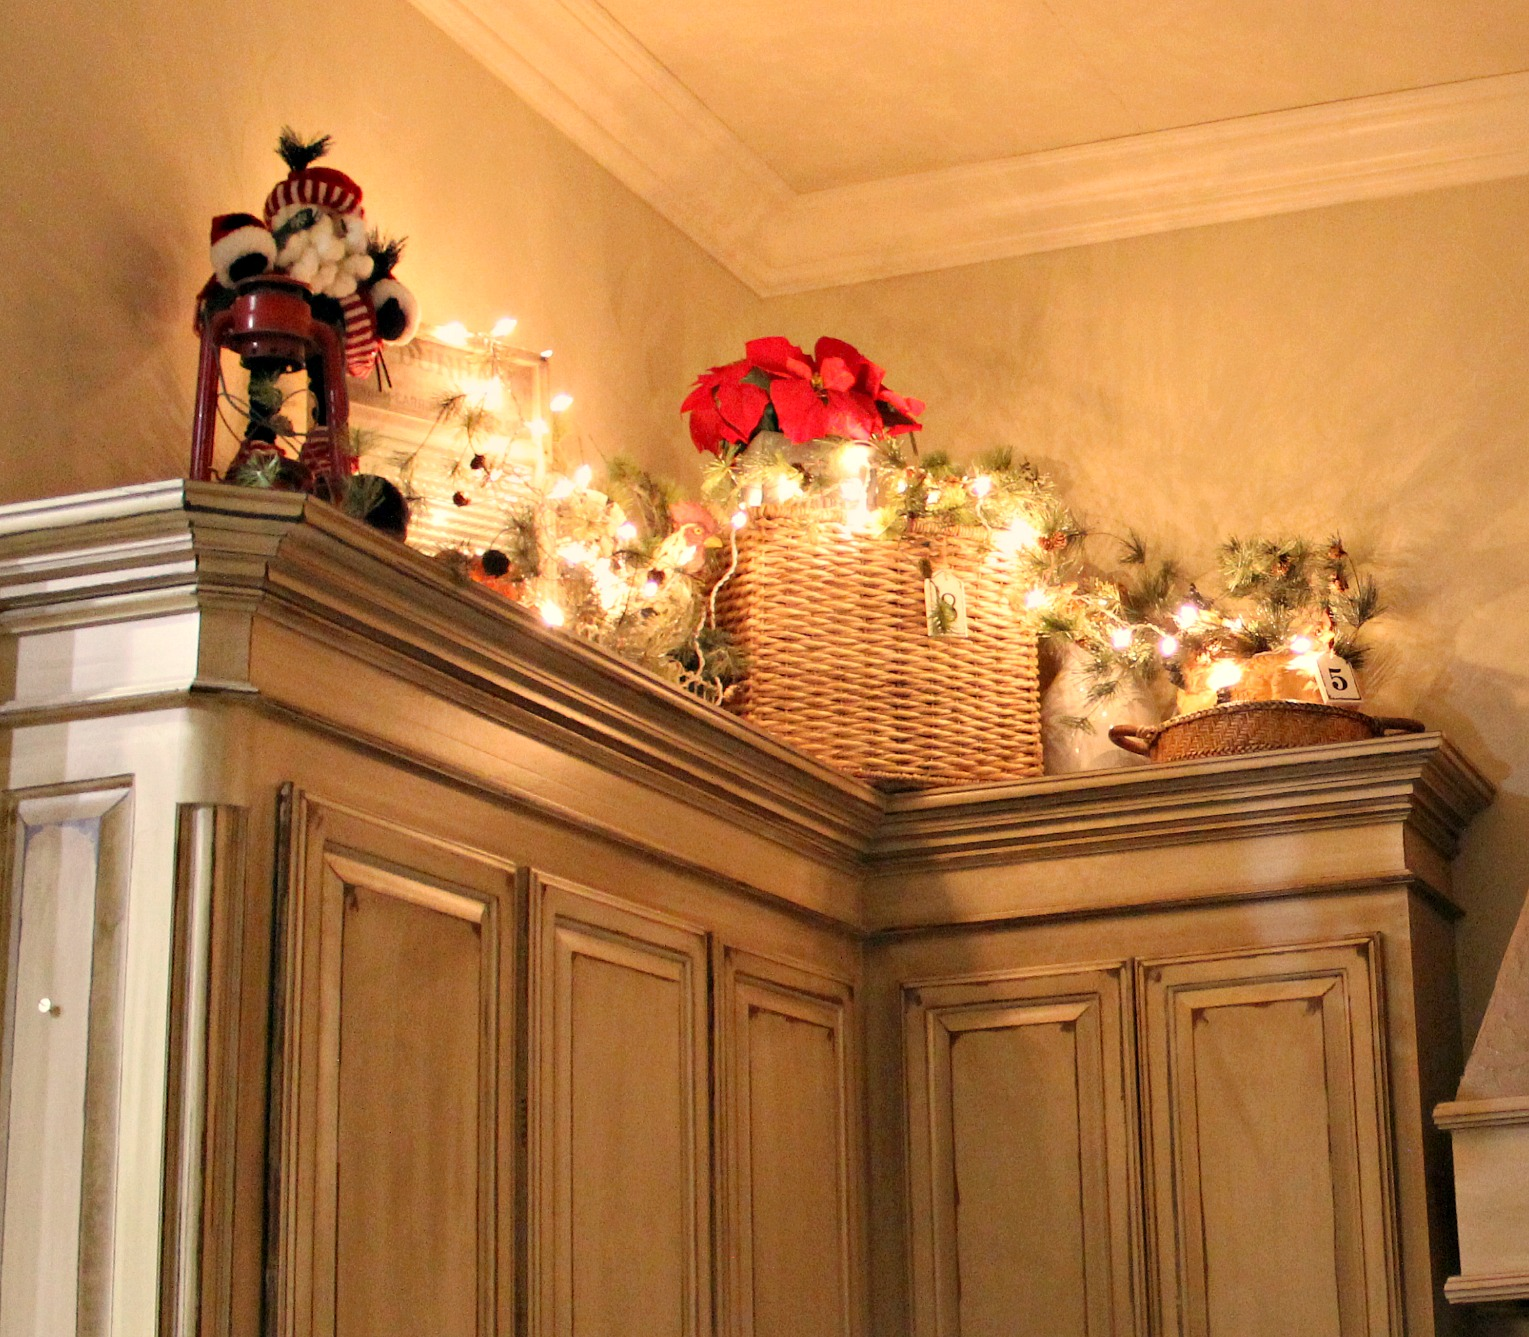 Kitchen Decorations For Above Cabinets: At Rivercrest Cottage: Putting Away Christmas